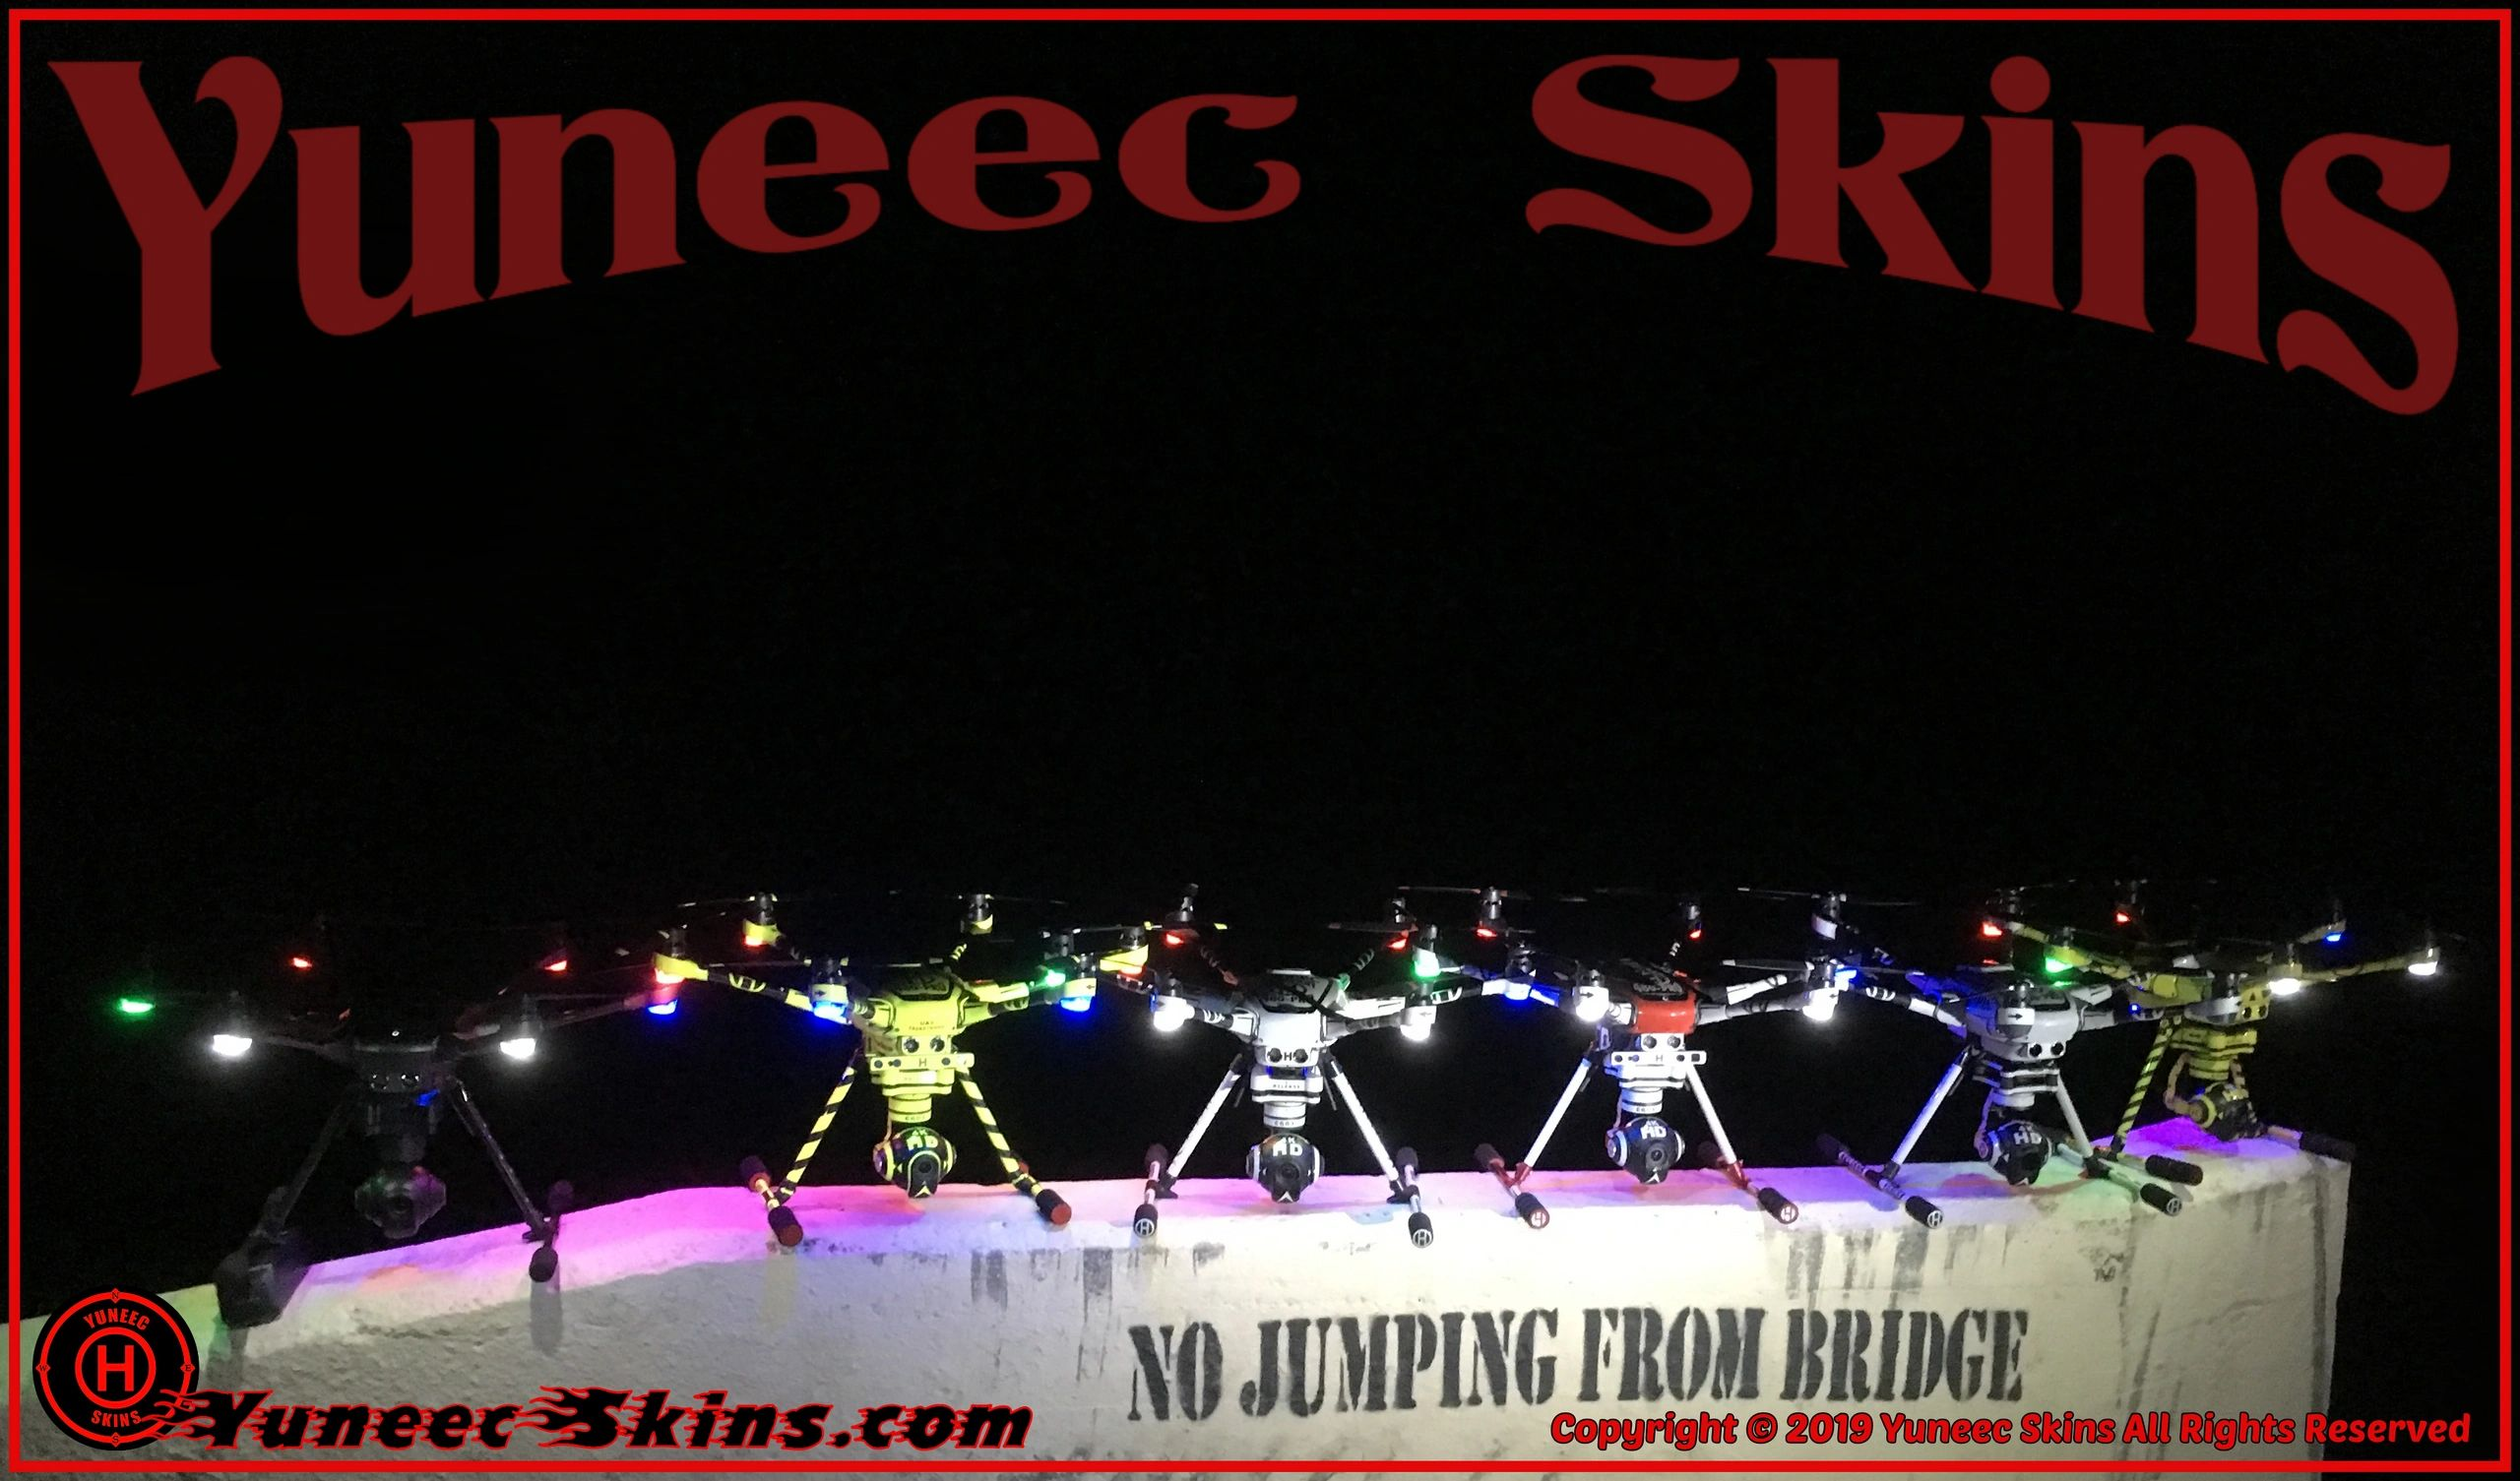 Yuneec Skins-Vinyl Decal Supplier, Vinyl Skins, Wraps, Decals & Graphics, Made to Order in the USA